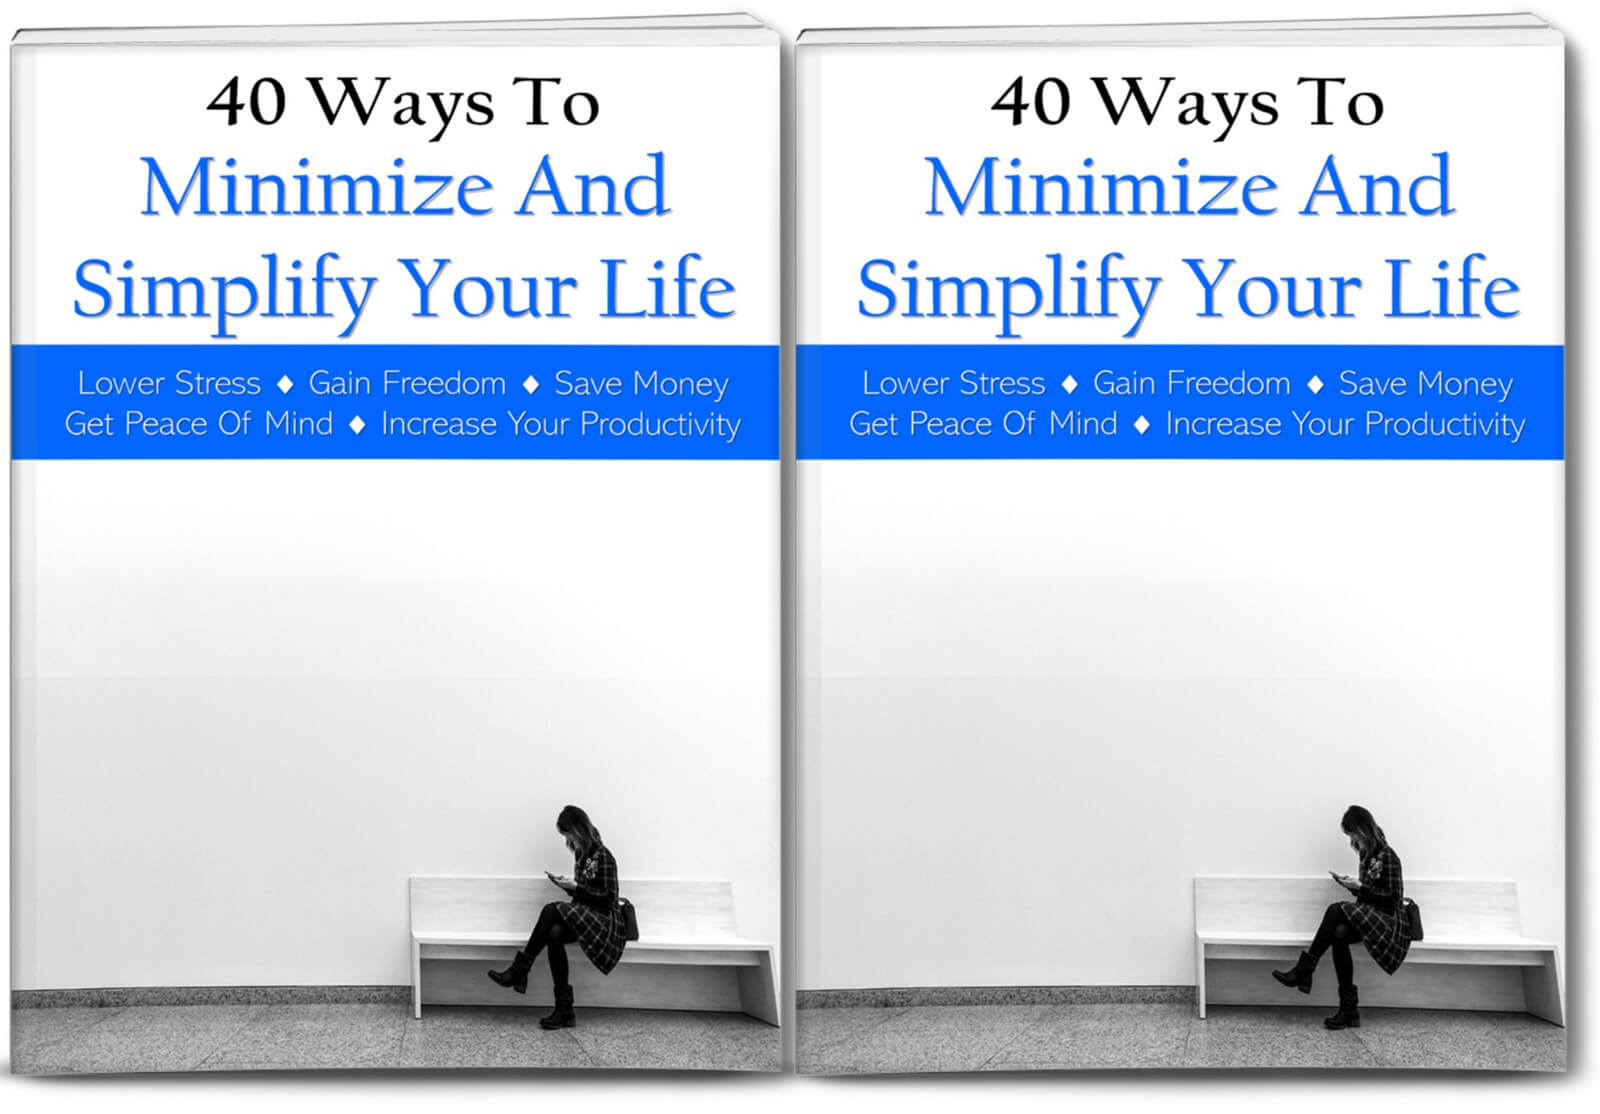 minimize your life plr